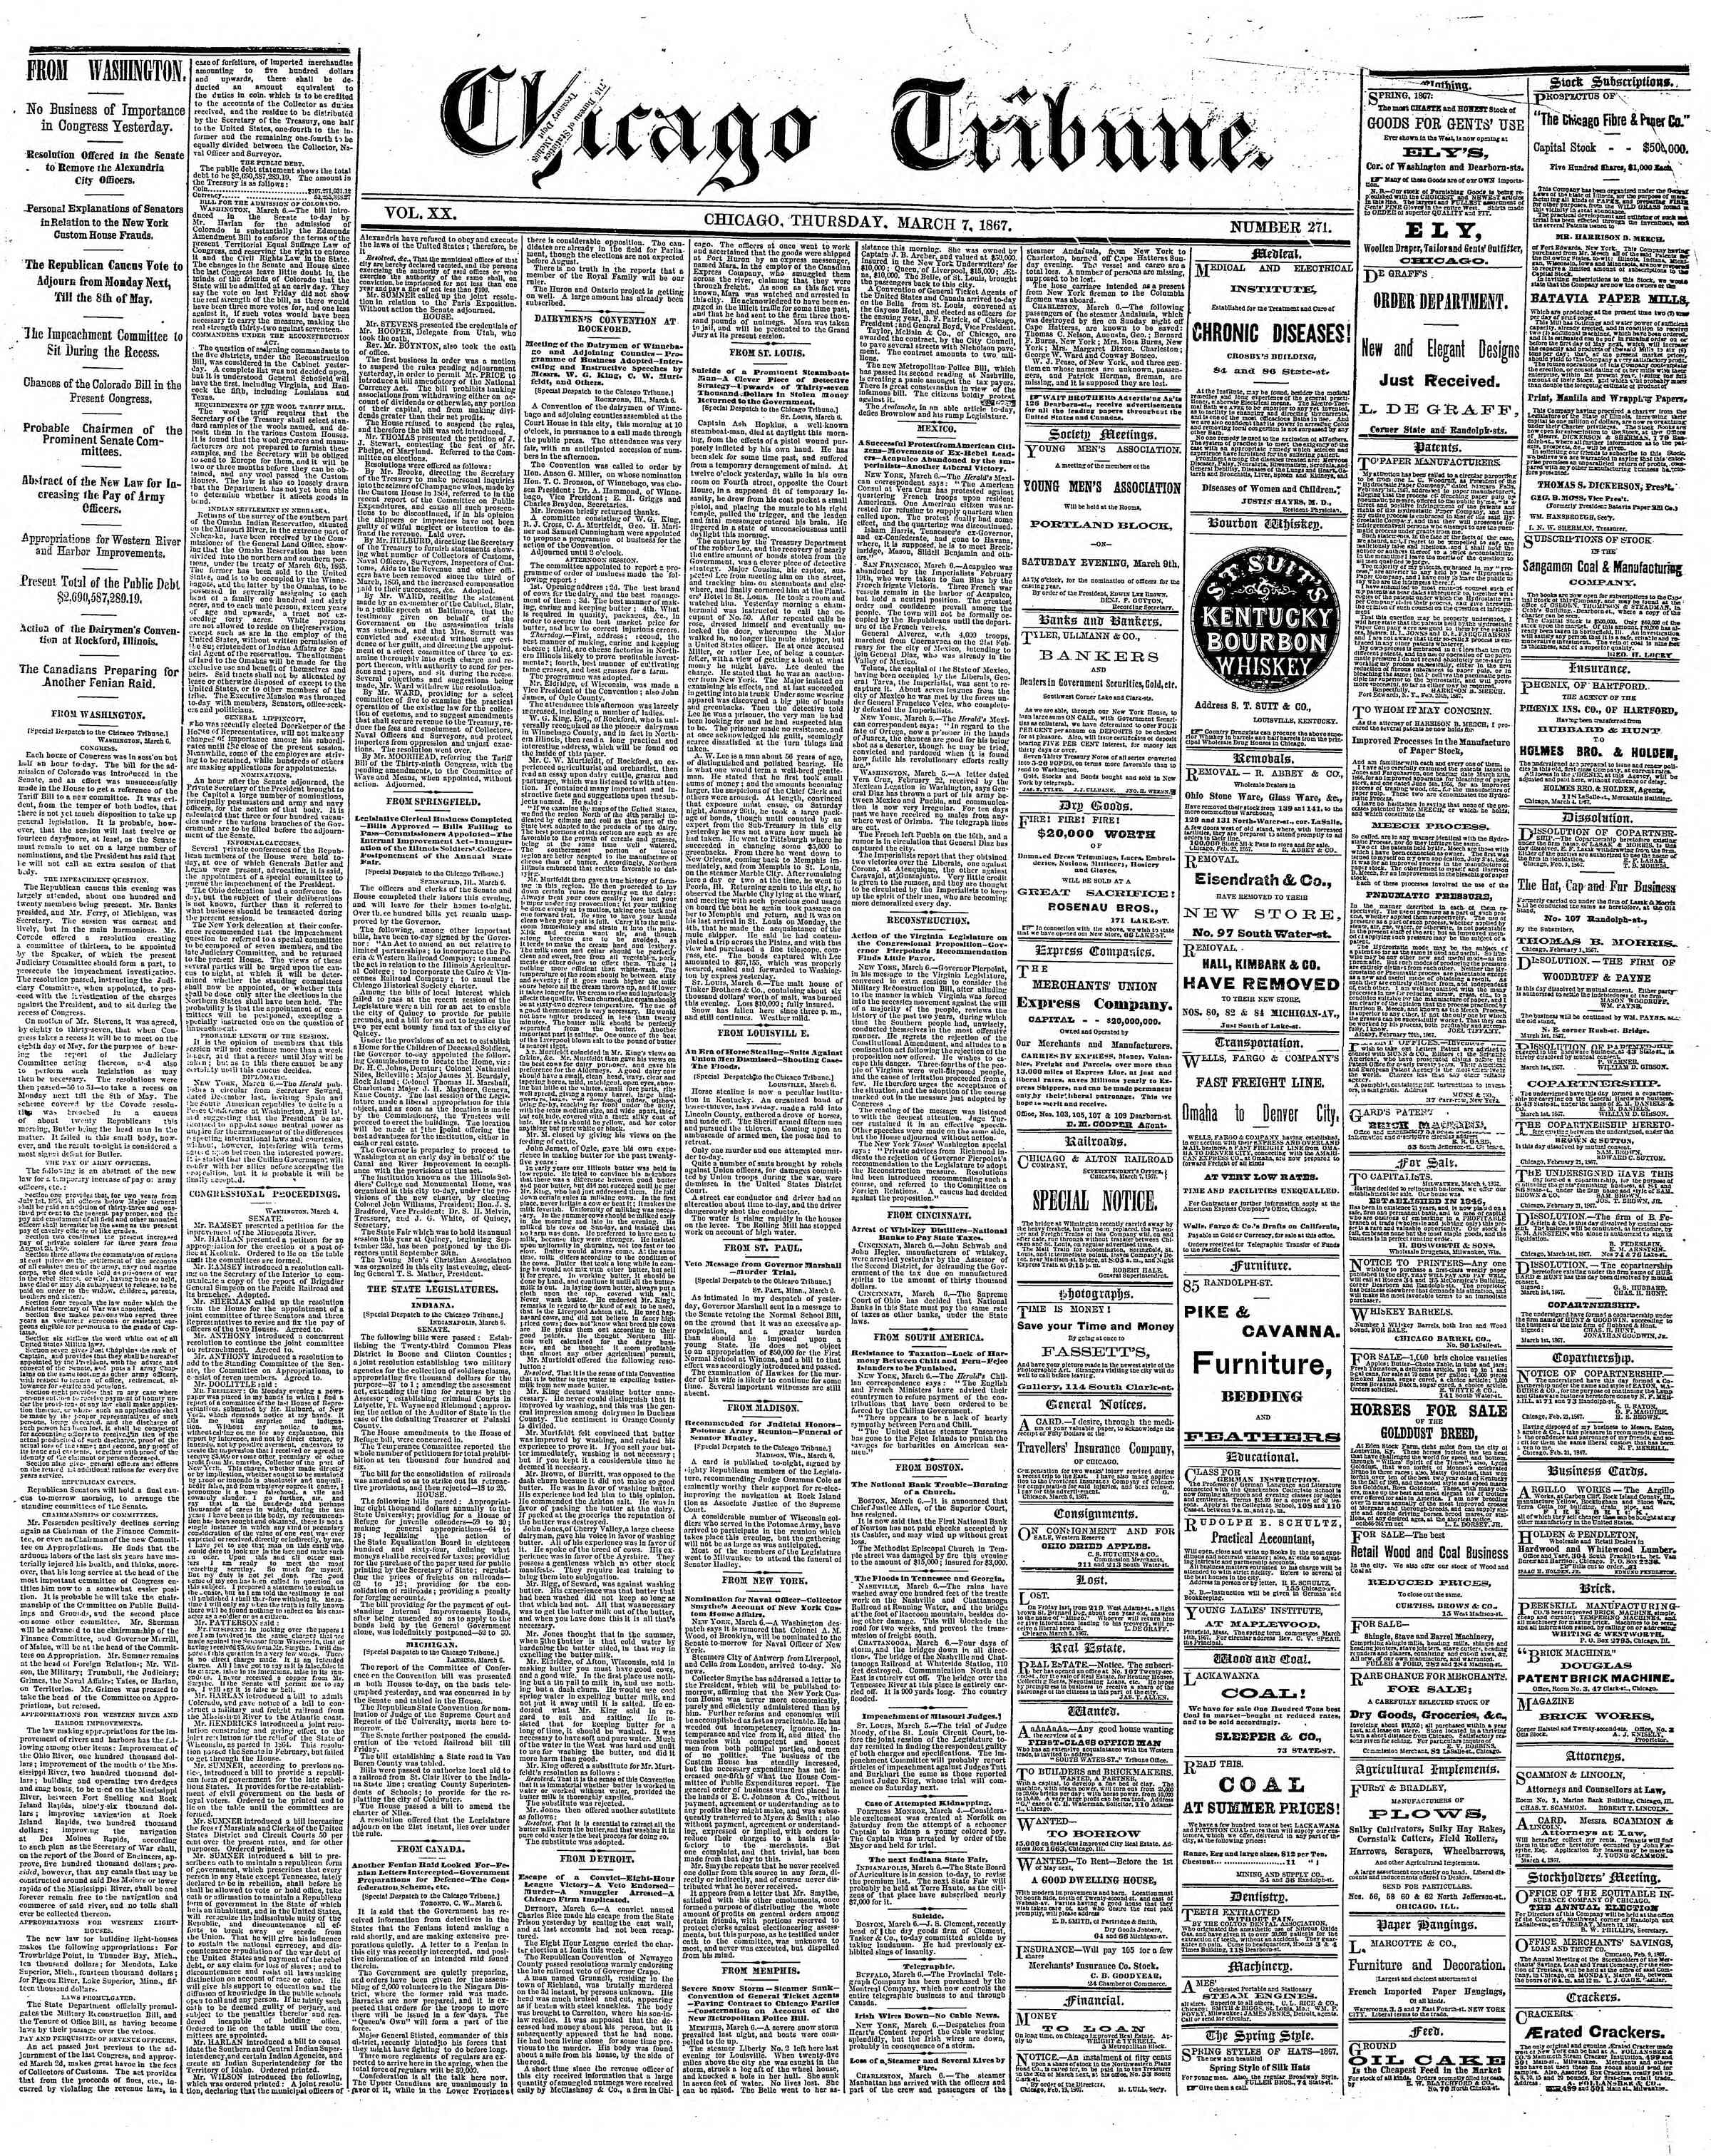 Newspaper of The Chicago Tribune dated March 7, 1867 Page 1